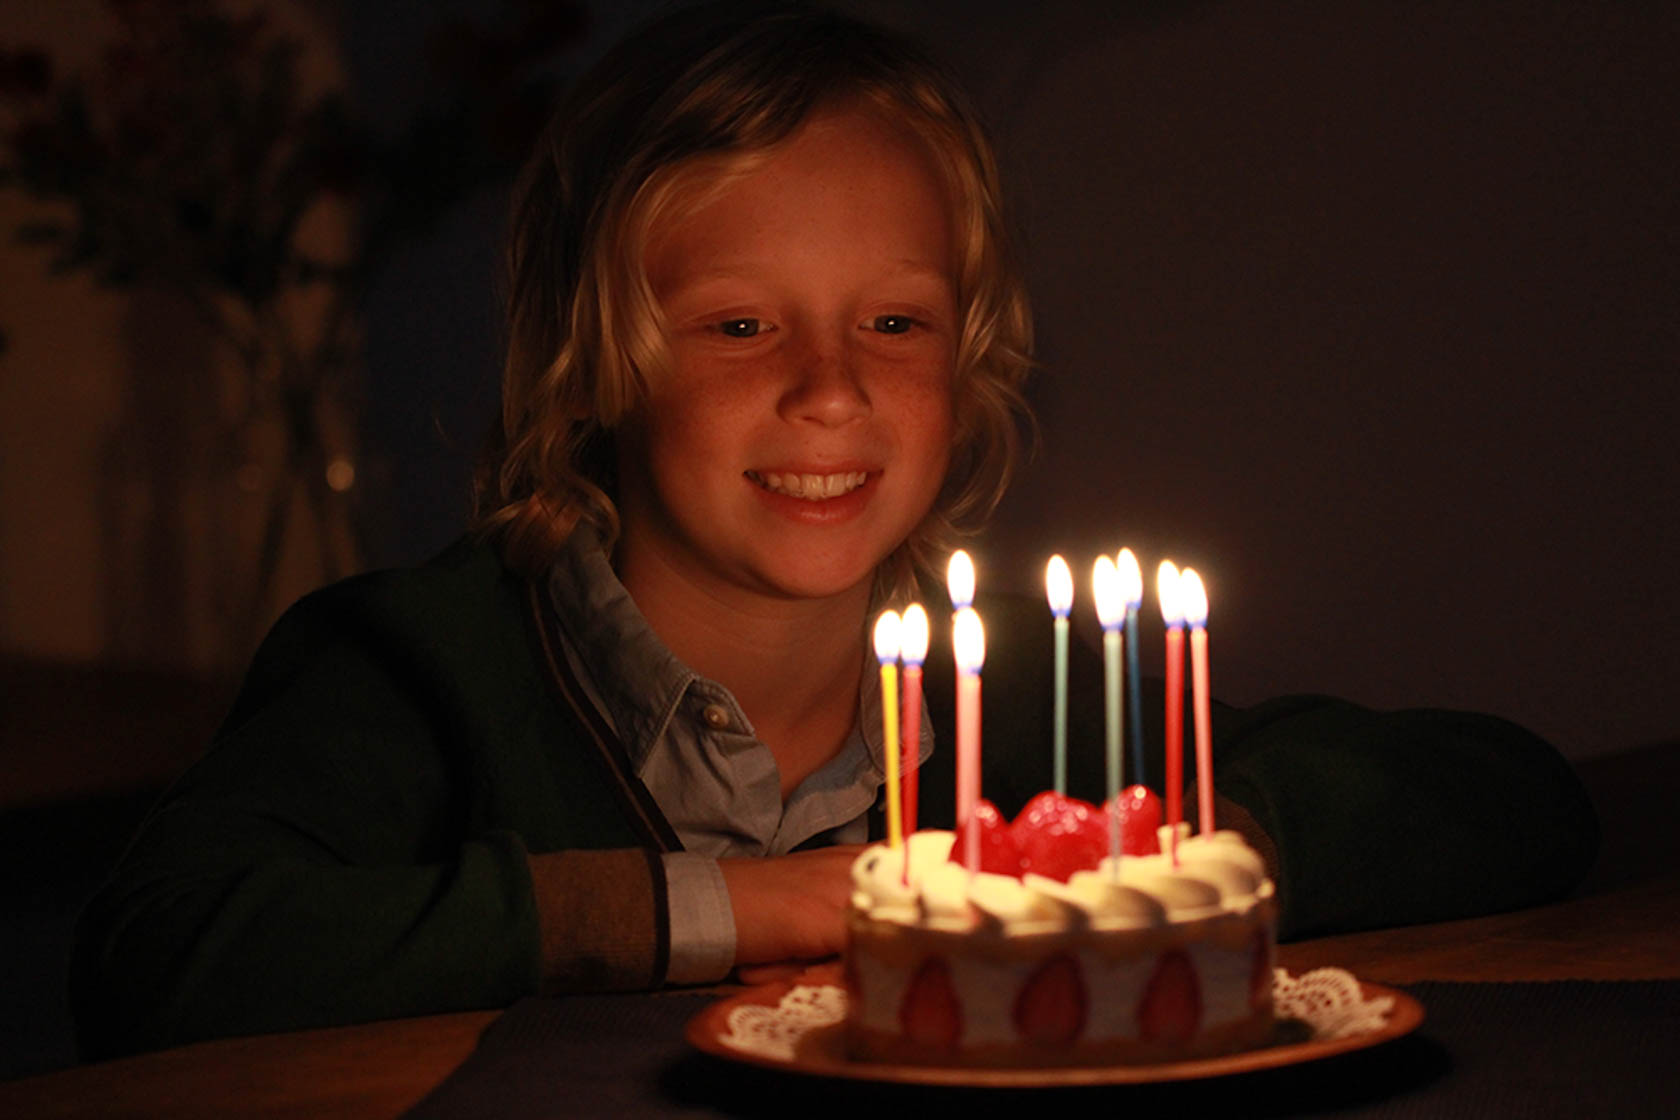 Young child sitting in front of a birthday cake with candles taken with Canon EOS 1300D DSLR camera